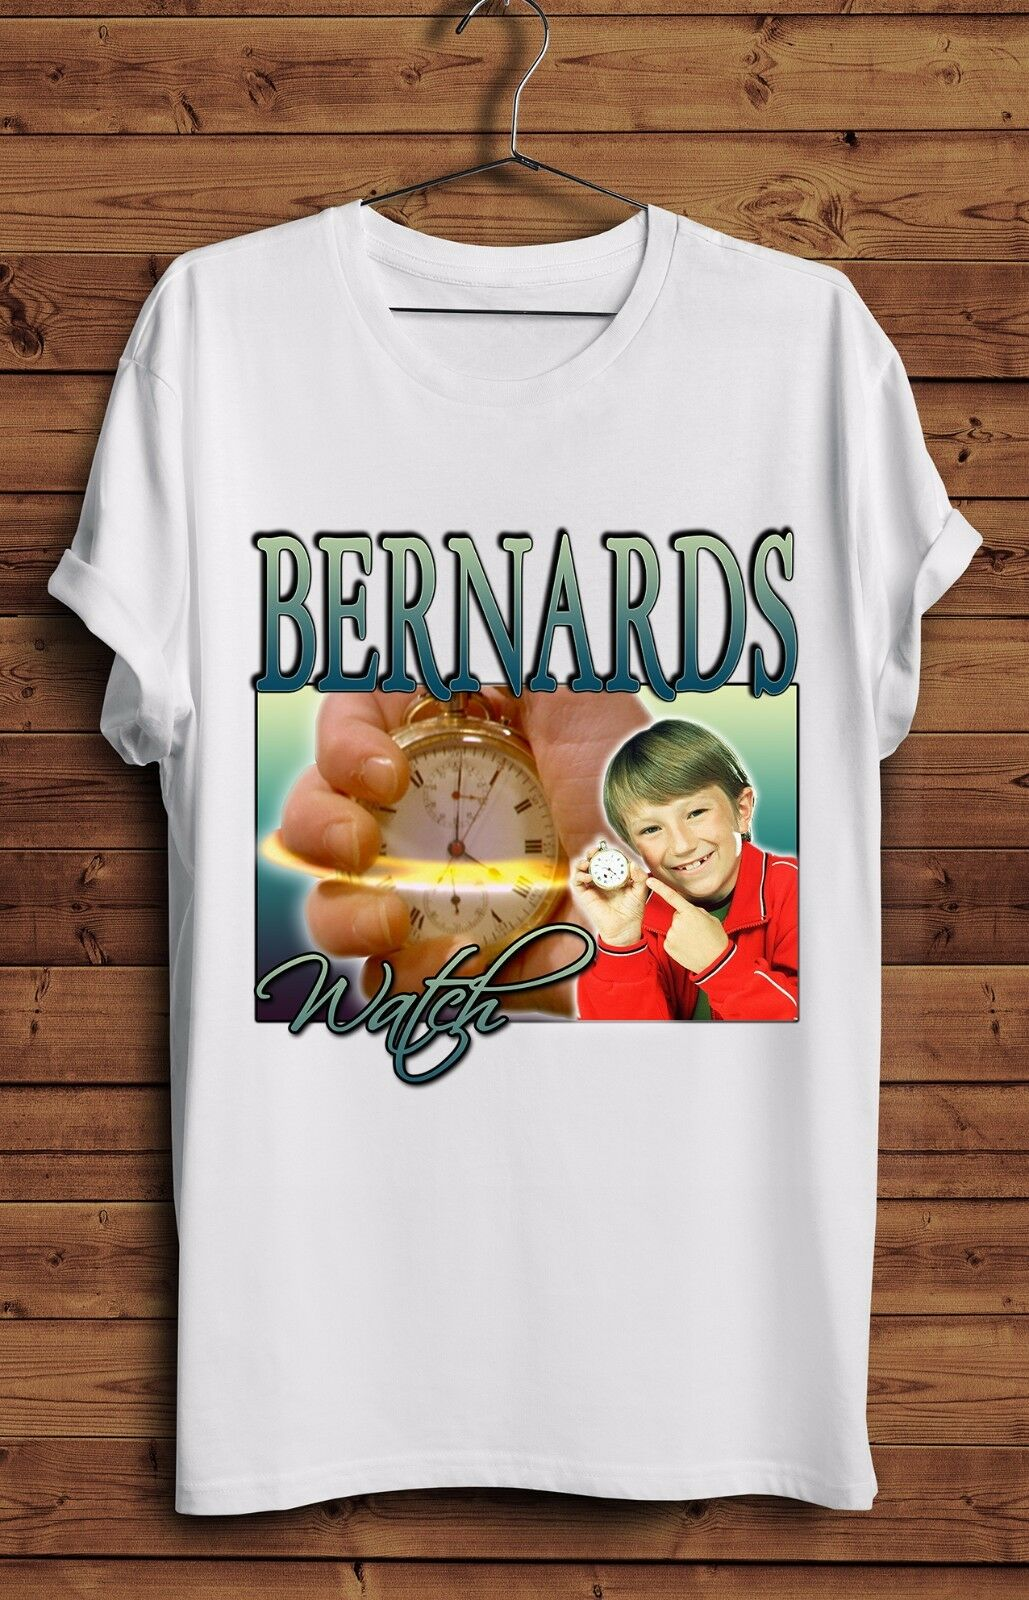 Bernards Watch T Shirt Vintage Funny Homage 90s TV Show Retro Time Short Sleeve Tee Shirt Free Shipping cheap wholesale image